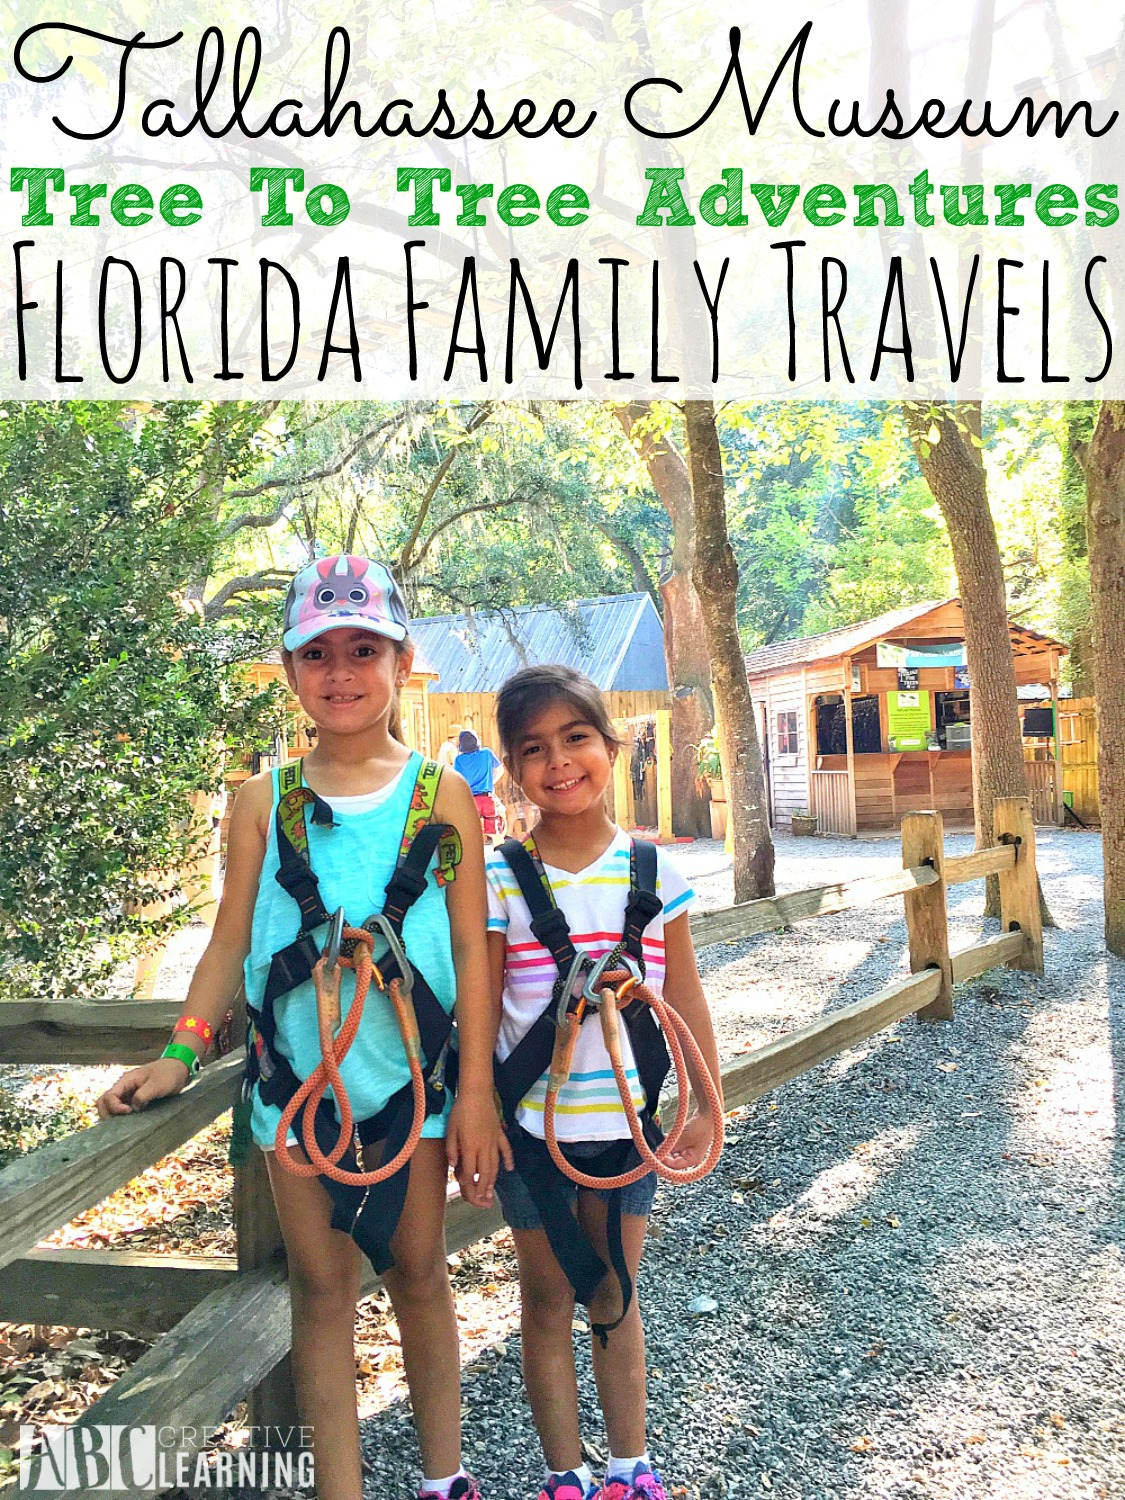 Tallahassee Museum - Tree To Tree Adventures Florida Family Travels - simplytodaylife.com